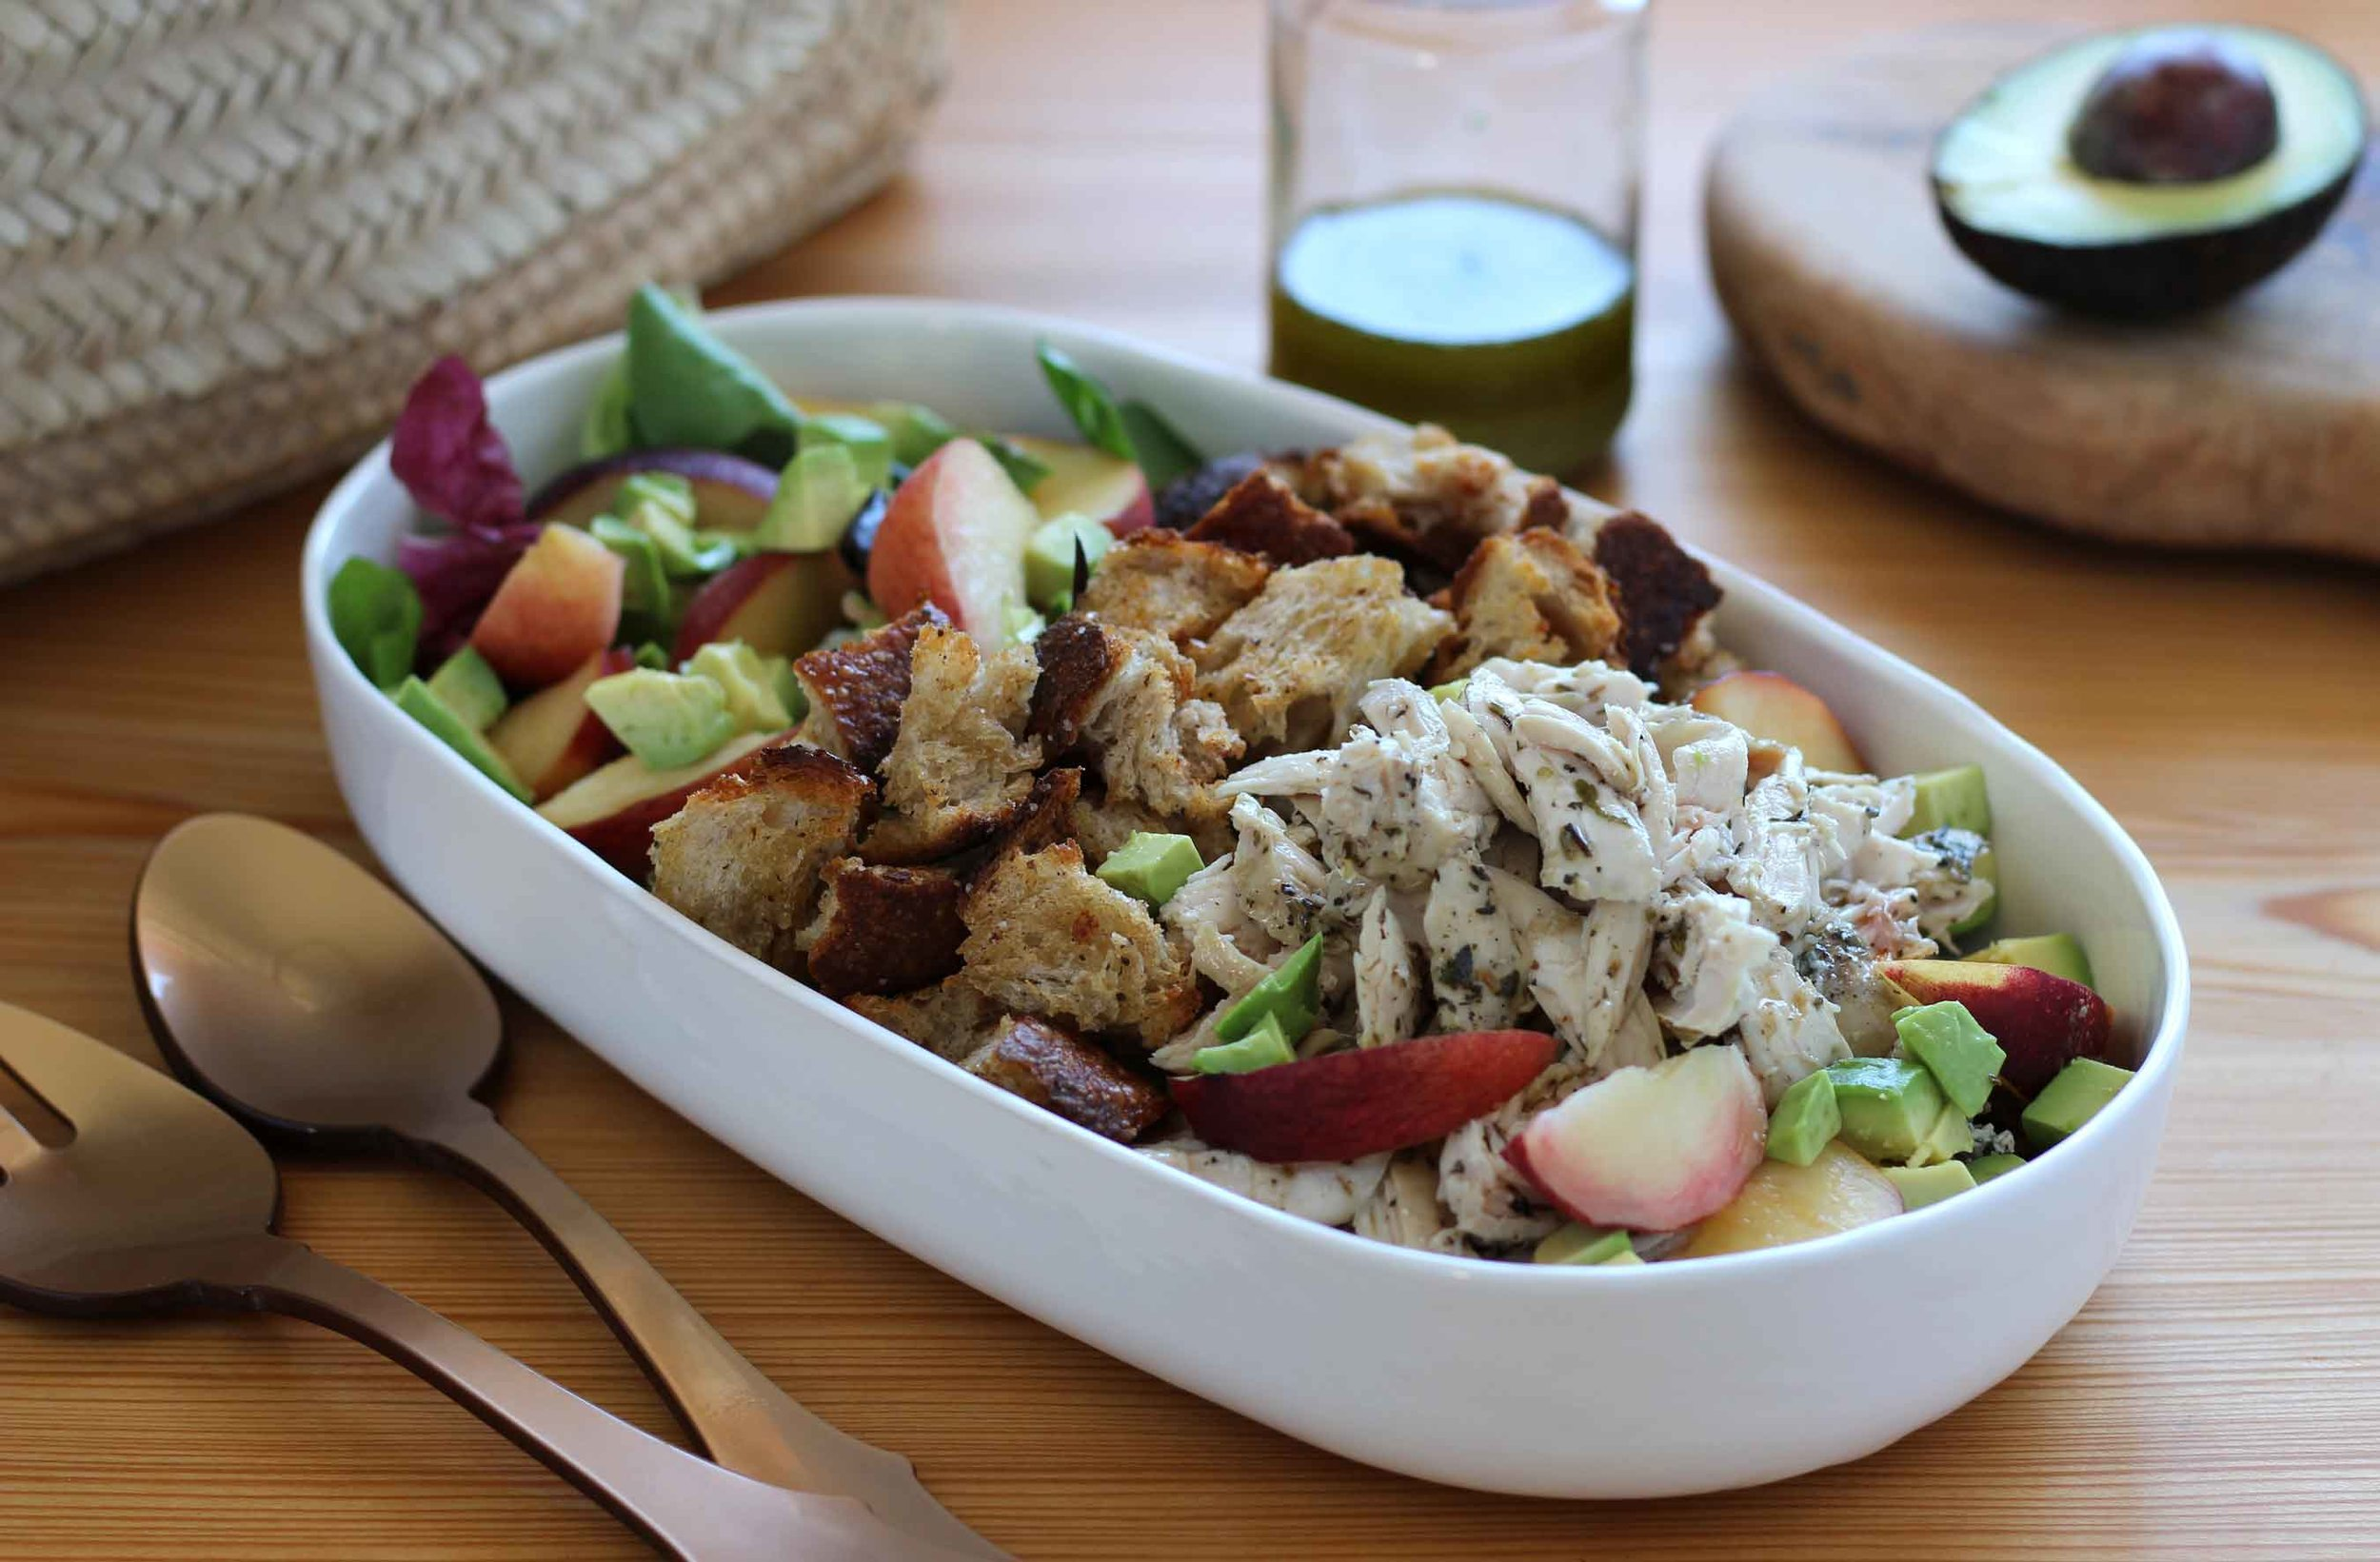 Shredded chicken is tossed with Herbs de Provence, our peaches and avocados sliced, our hand torn croutons are crunchy, and the freshly made basil lime vinaigrette is waiting to be tossed in. Can't wait!